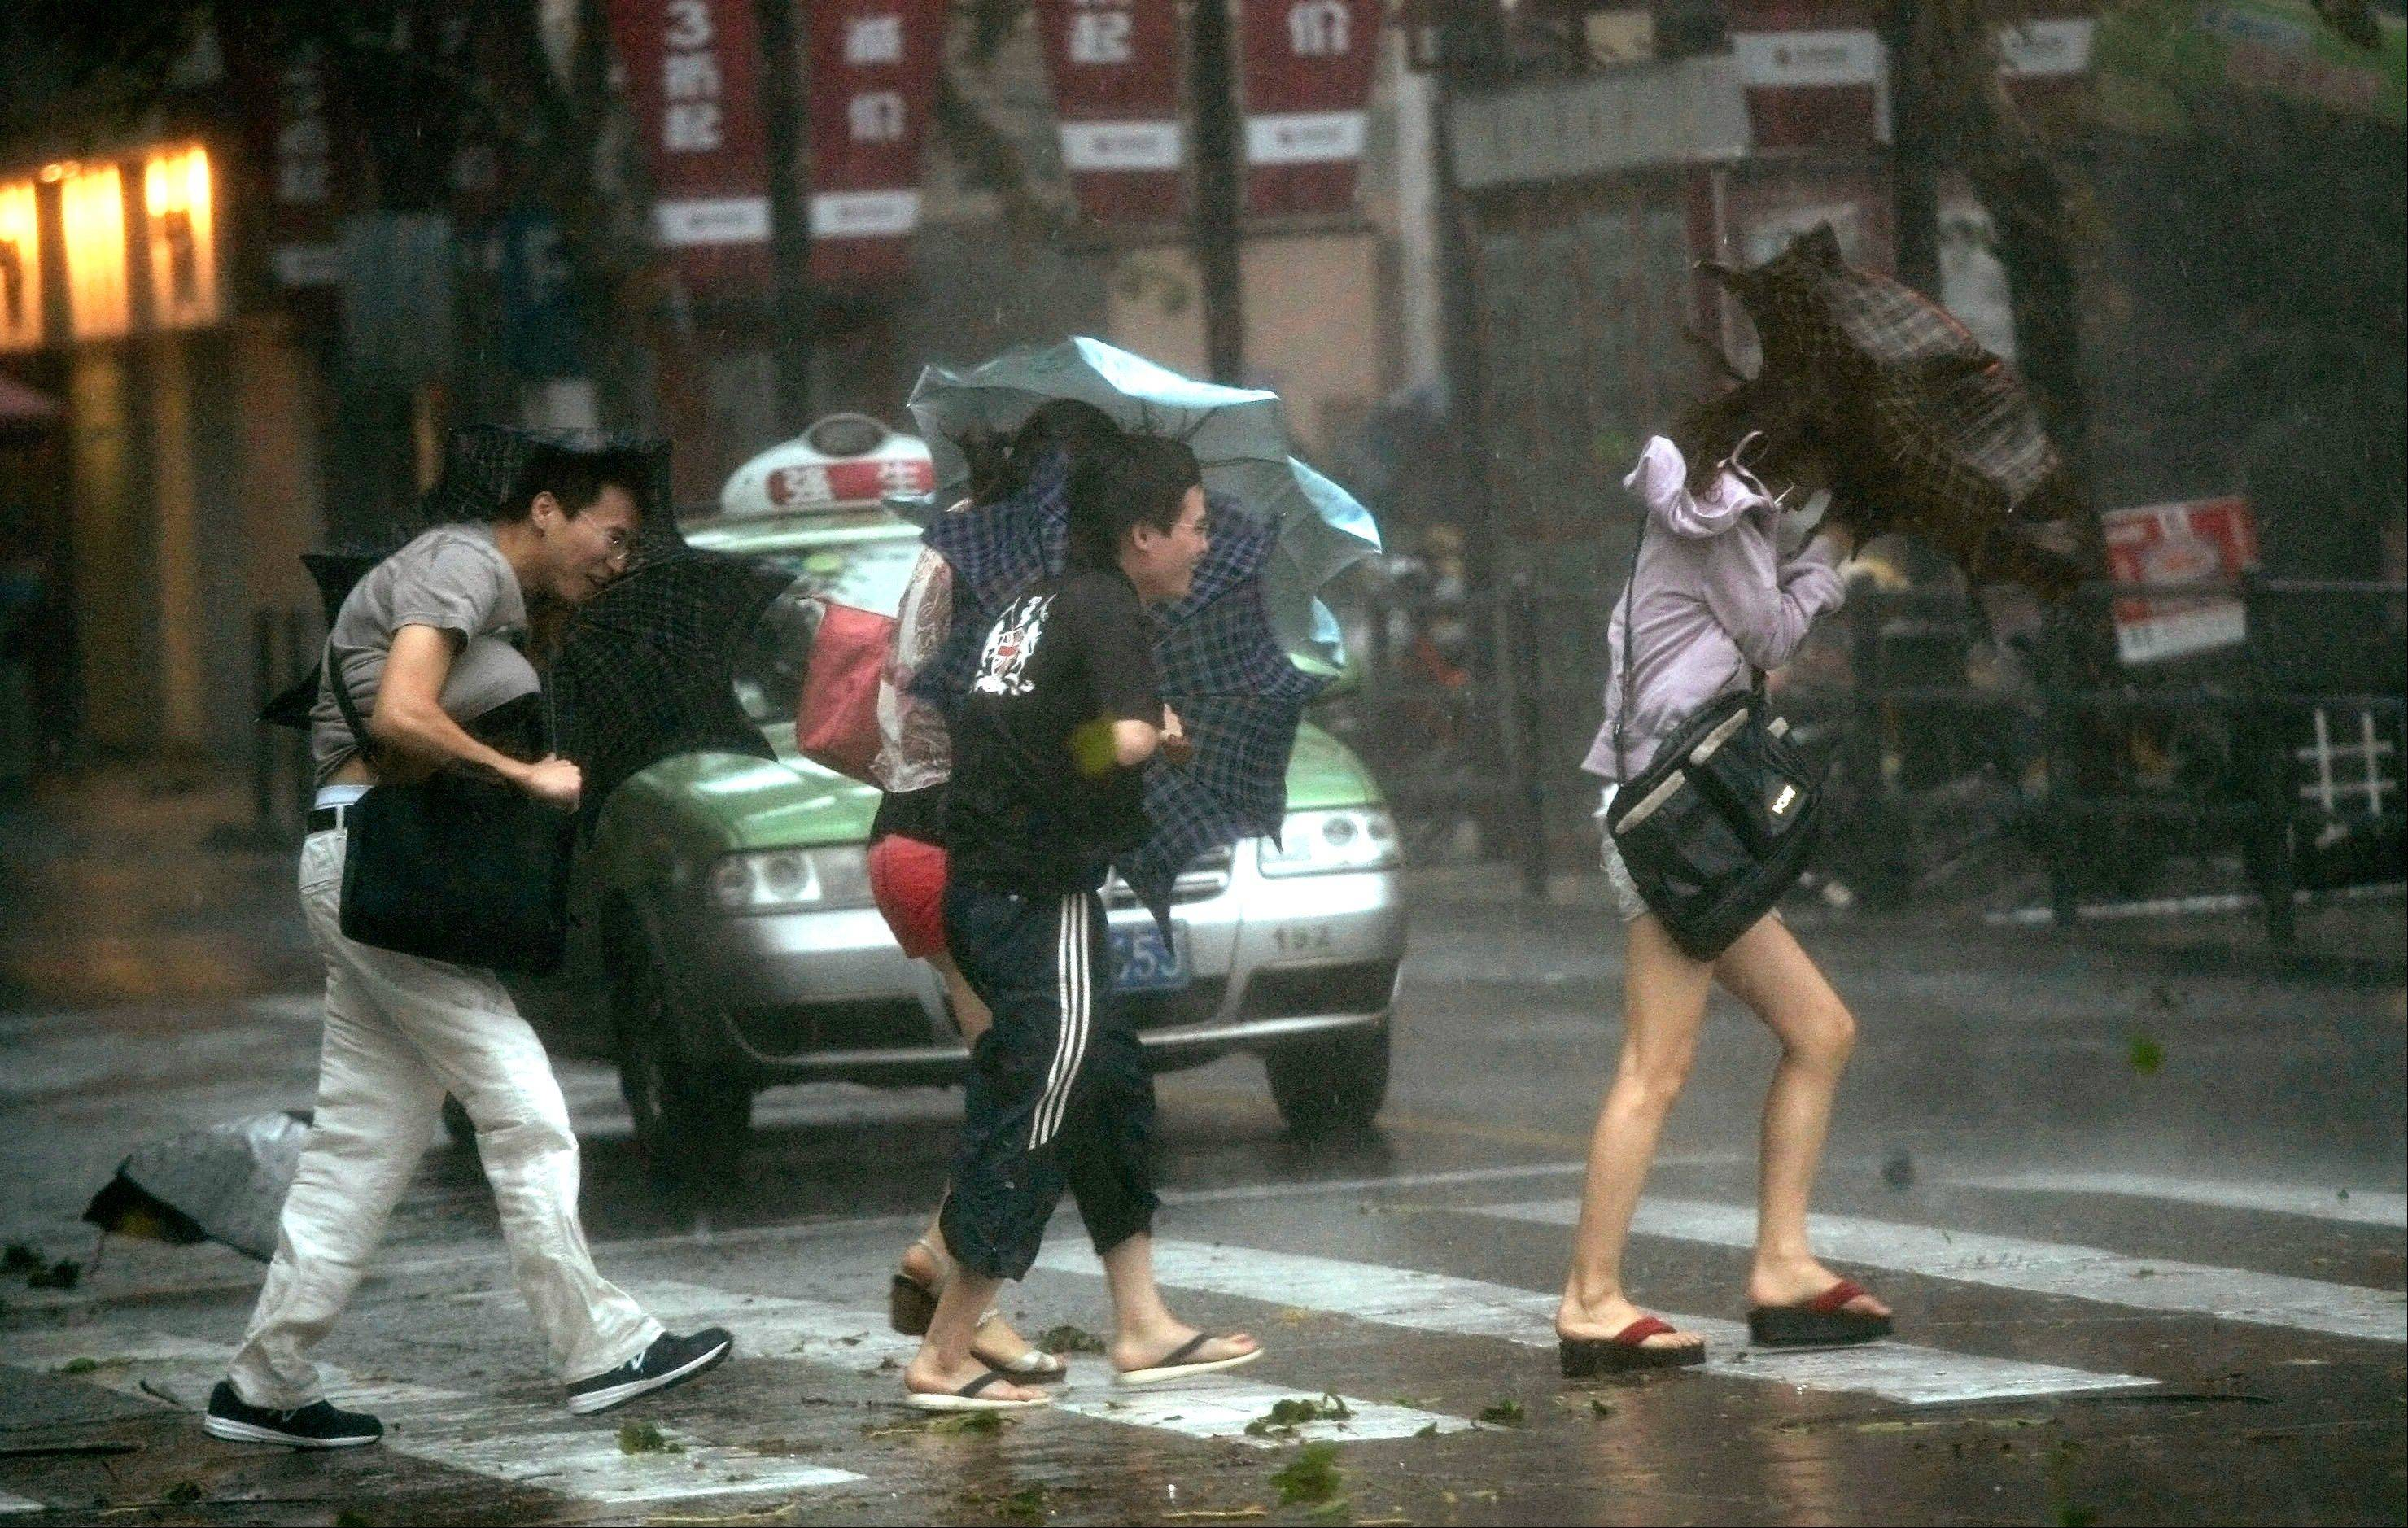 People walk in a rainstorm brought on by Typhoon Haikui Wednesday Aug. 8, 2012 in Shanghai, China. The typhoon slammed into eastern China's Zhejiang province early Wednesday, packing winds up to 90 miles per hour and triggering flooding.